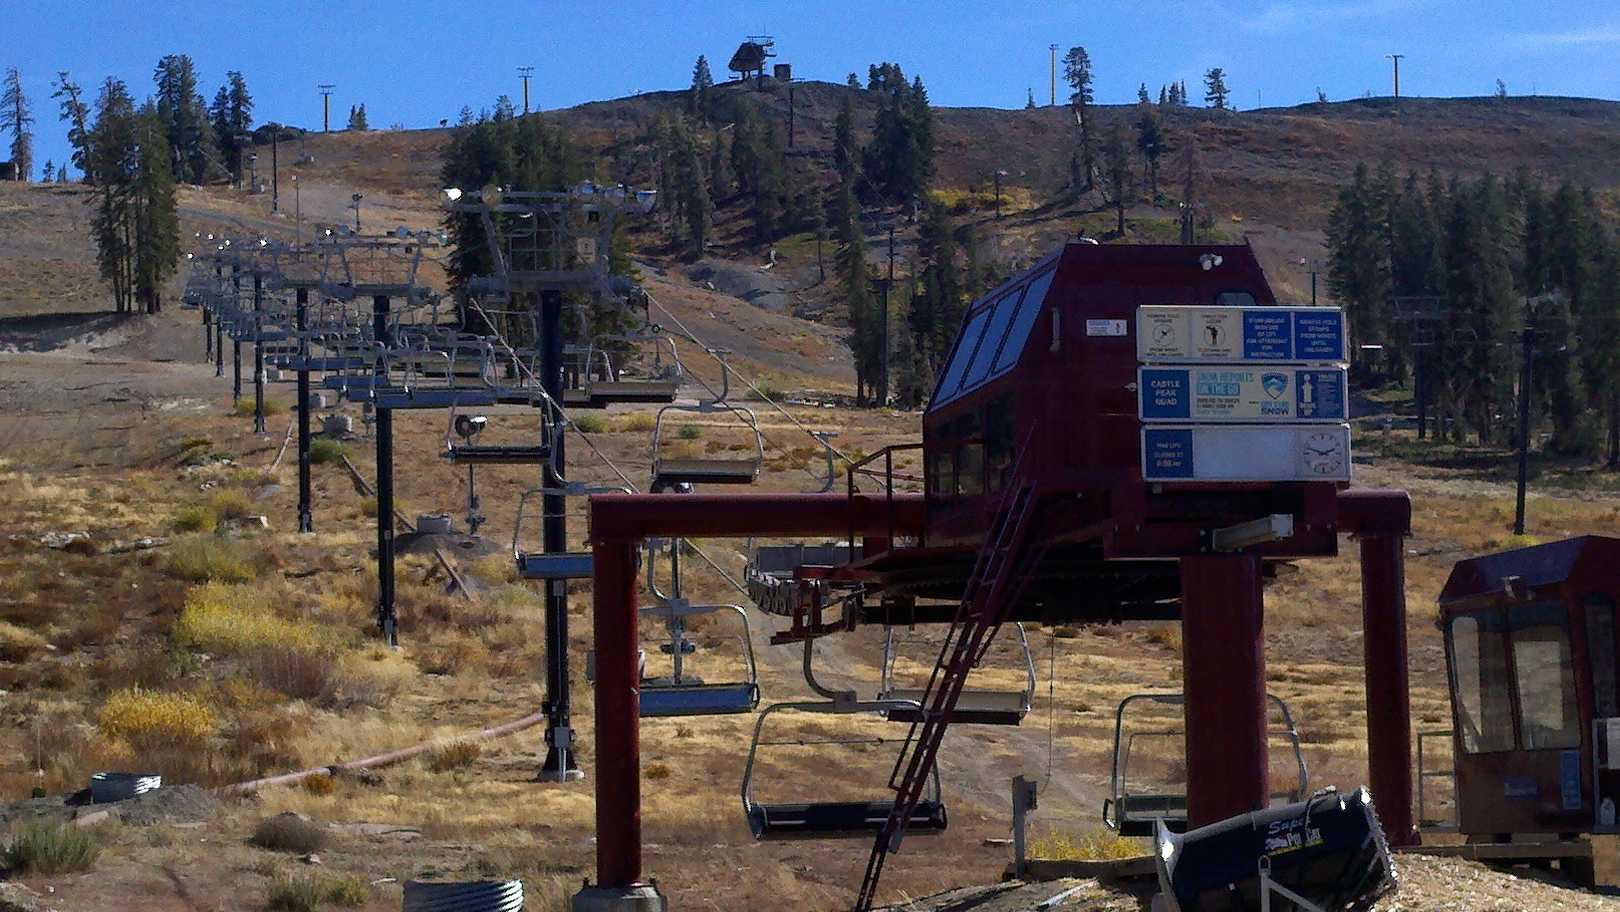 Ski lifts at Boreal could be running by the end of next week if a foot of snow falls next week.